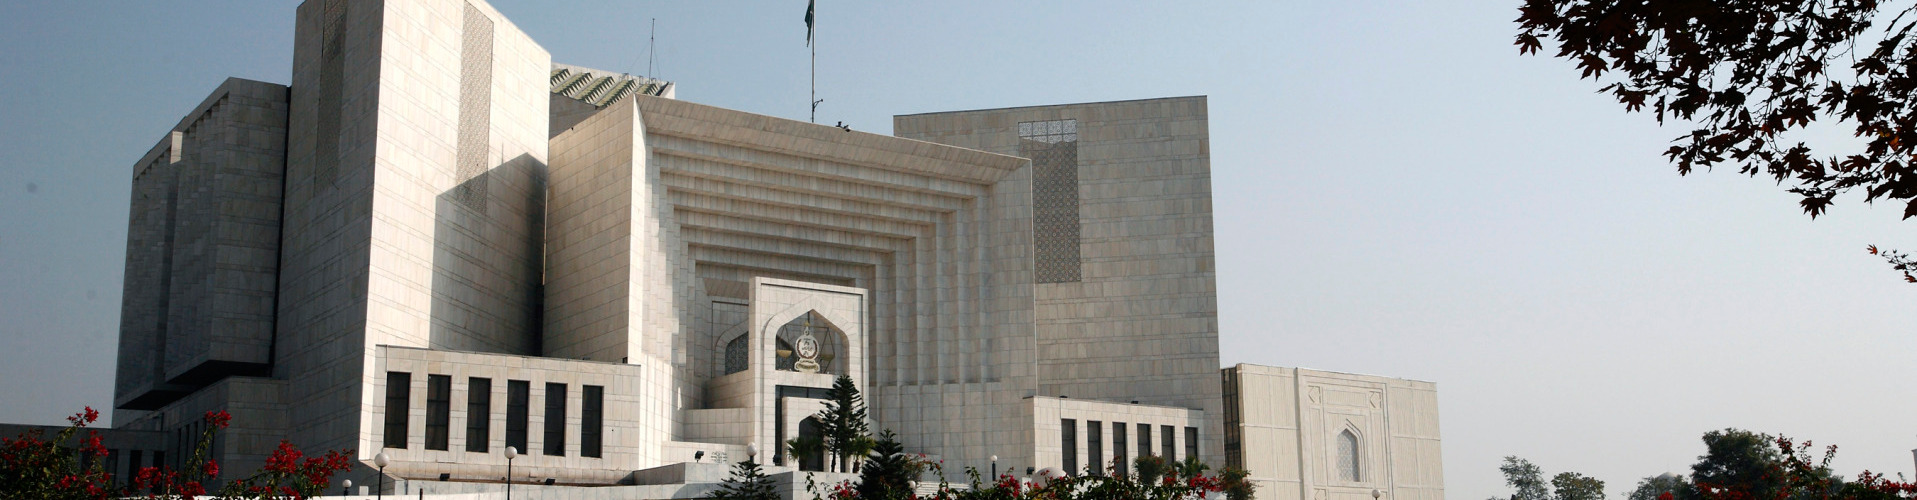 Supreme Court of Pakistan's building stands in Islamabad, Pakistan